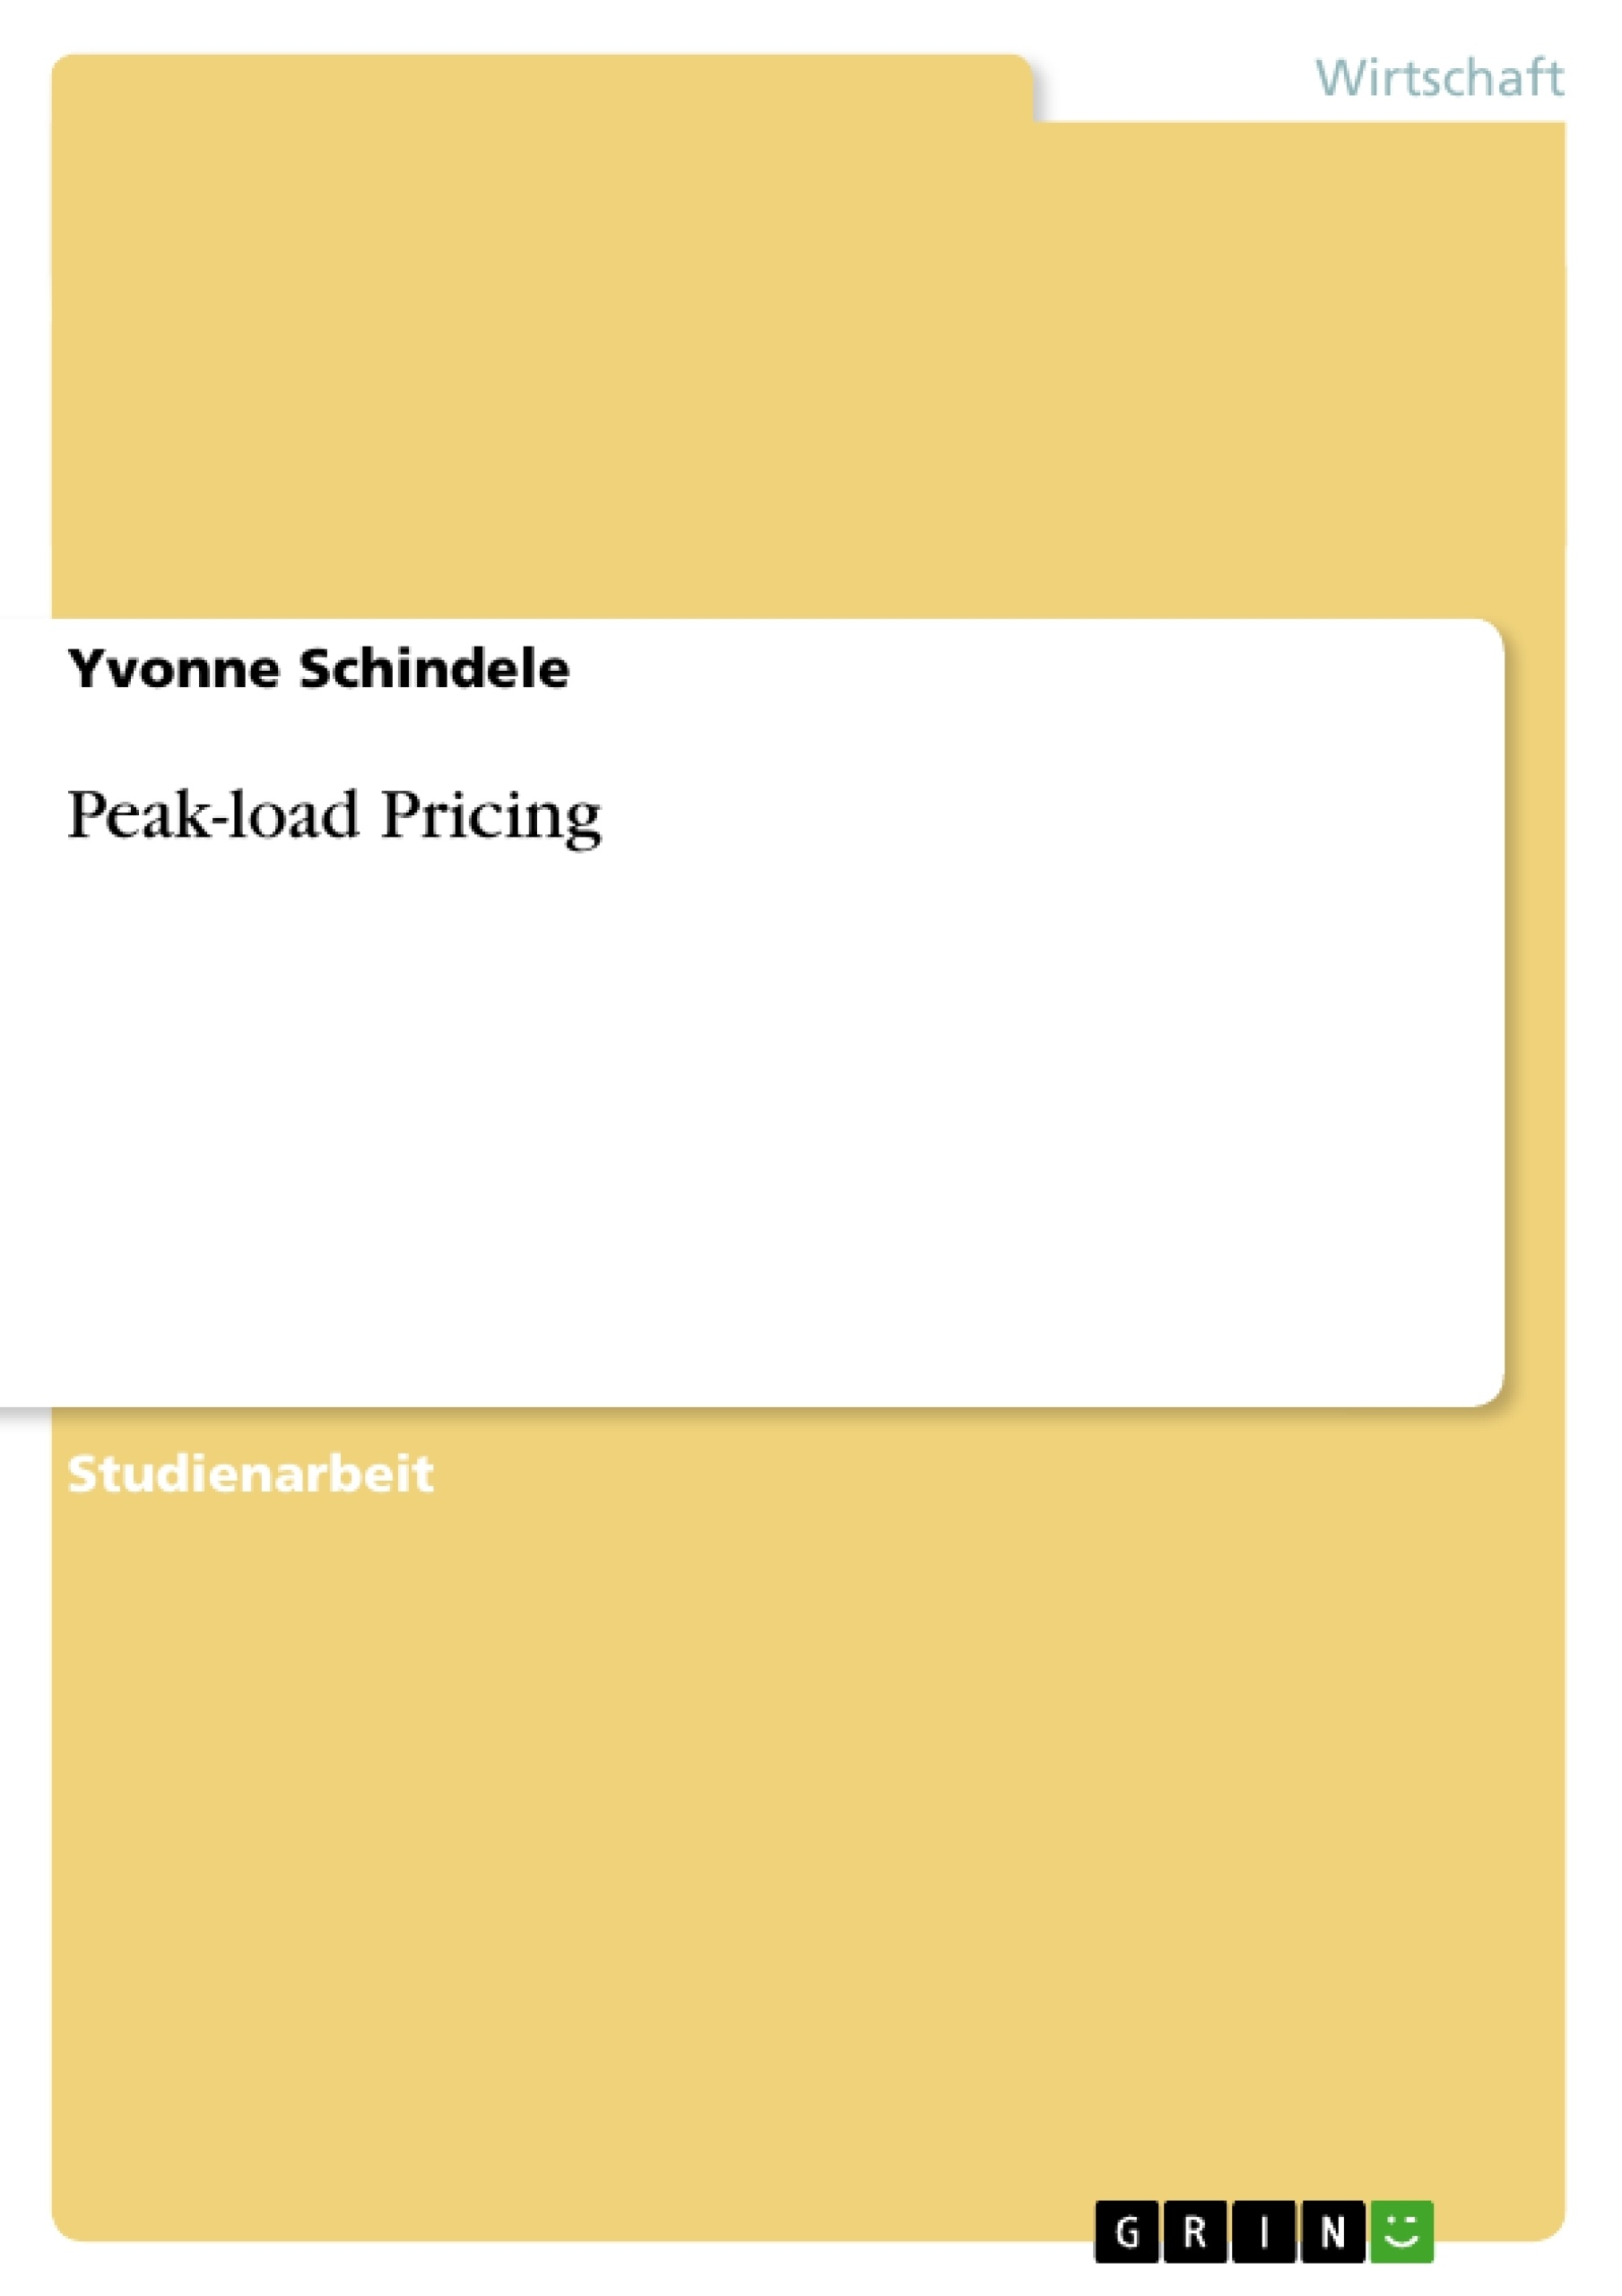 Titel: Peak-load Pricing